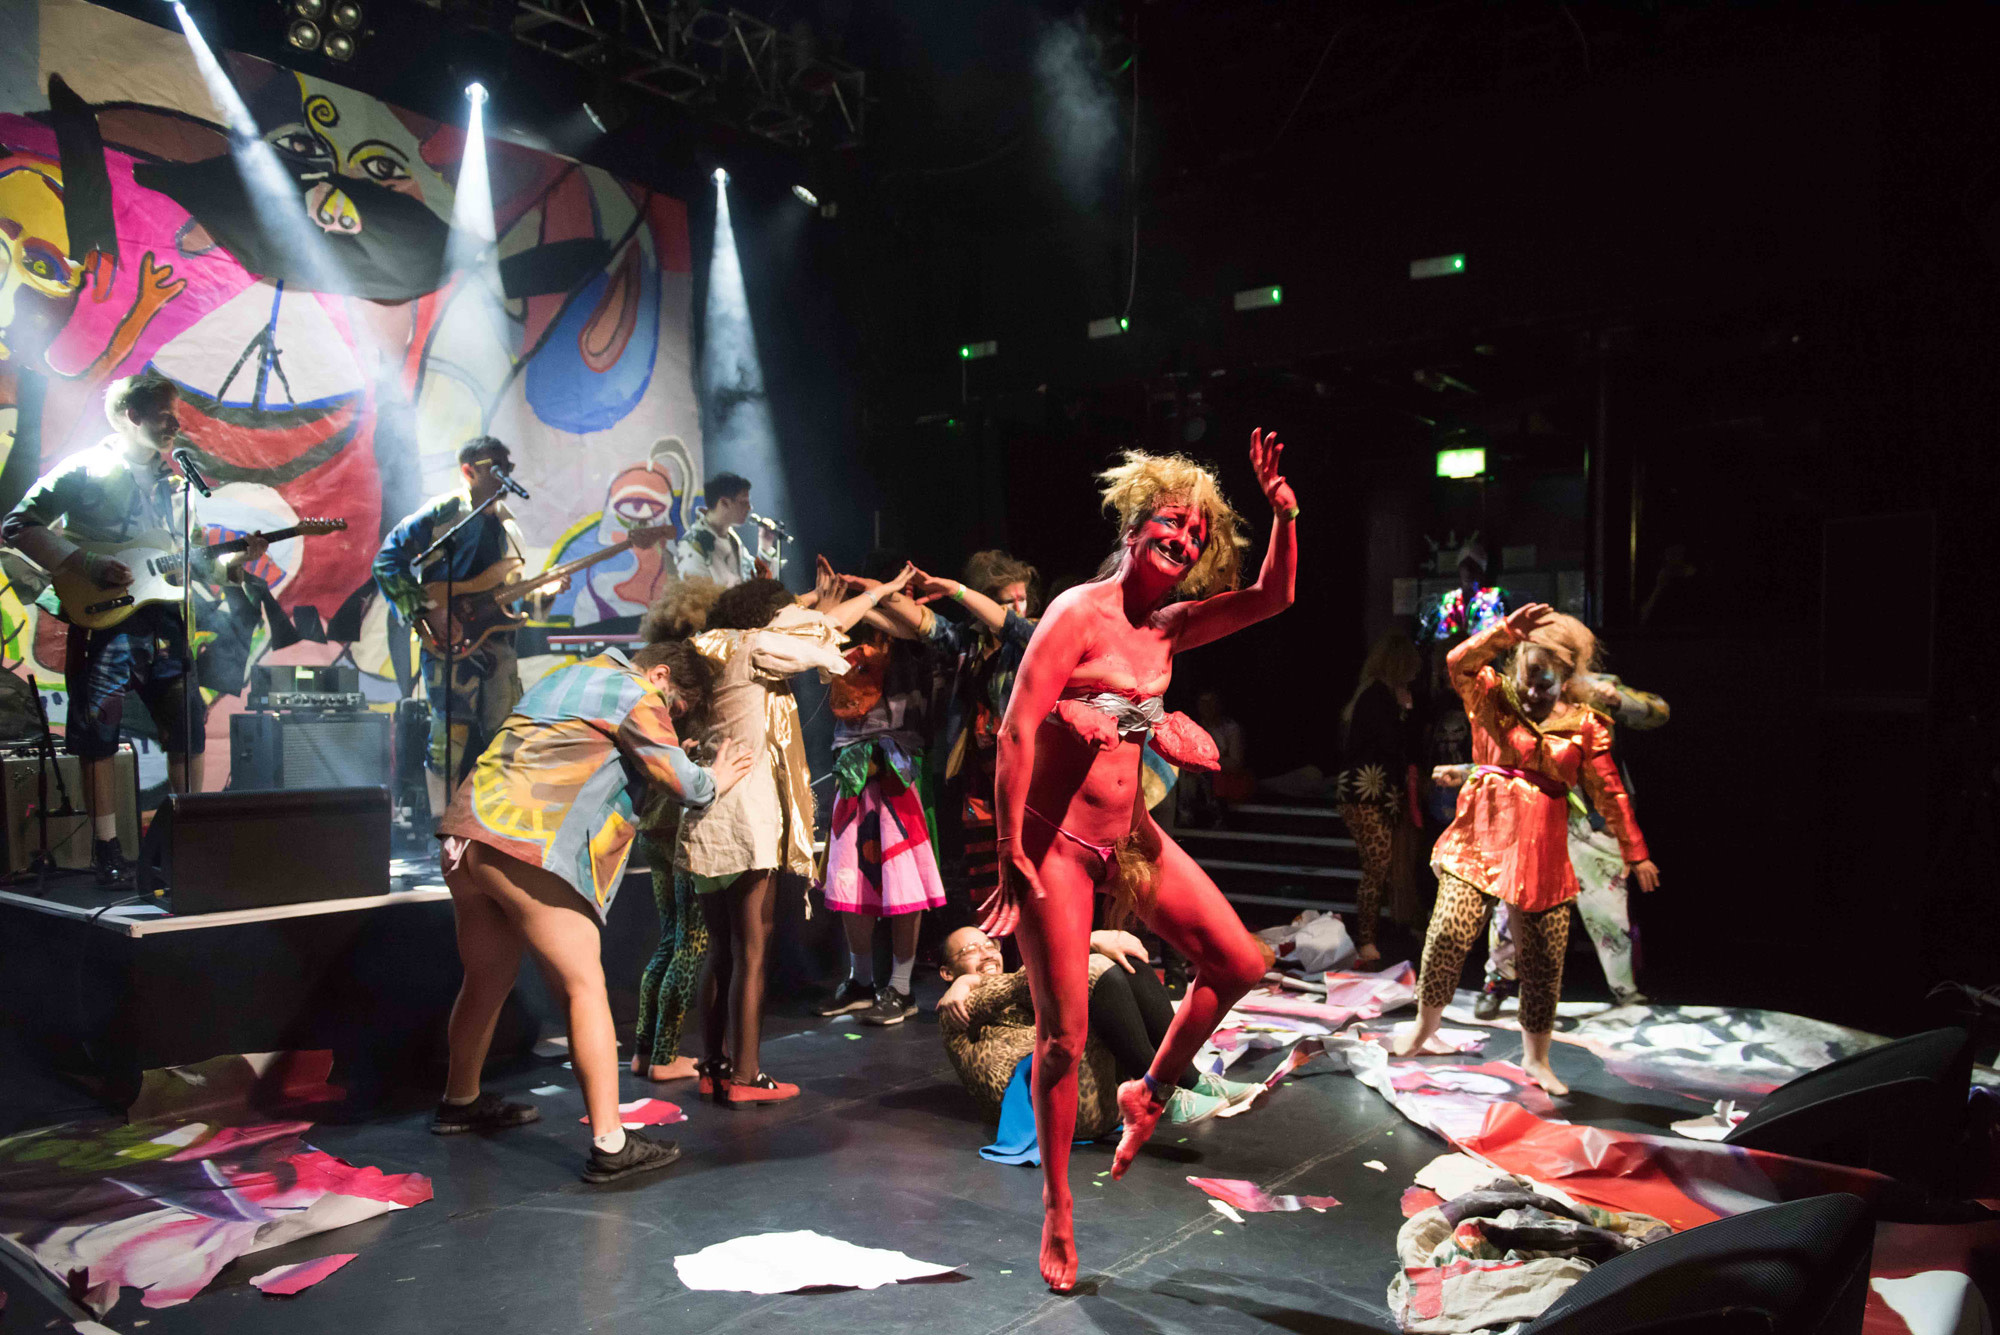 <p>Culture and Leisure with MEGA HAMMER, An Evening of Performances by DRAF at KOKO, 3rd October 2017, London</p>